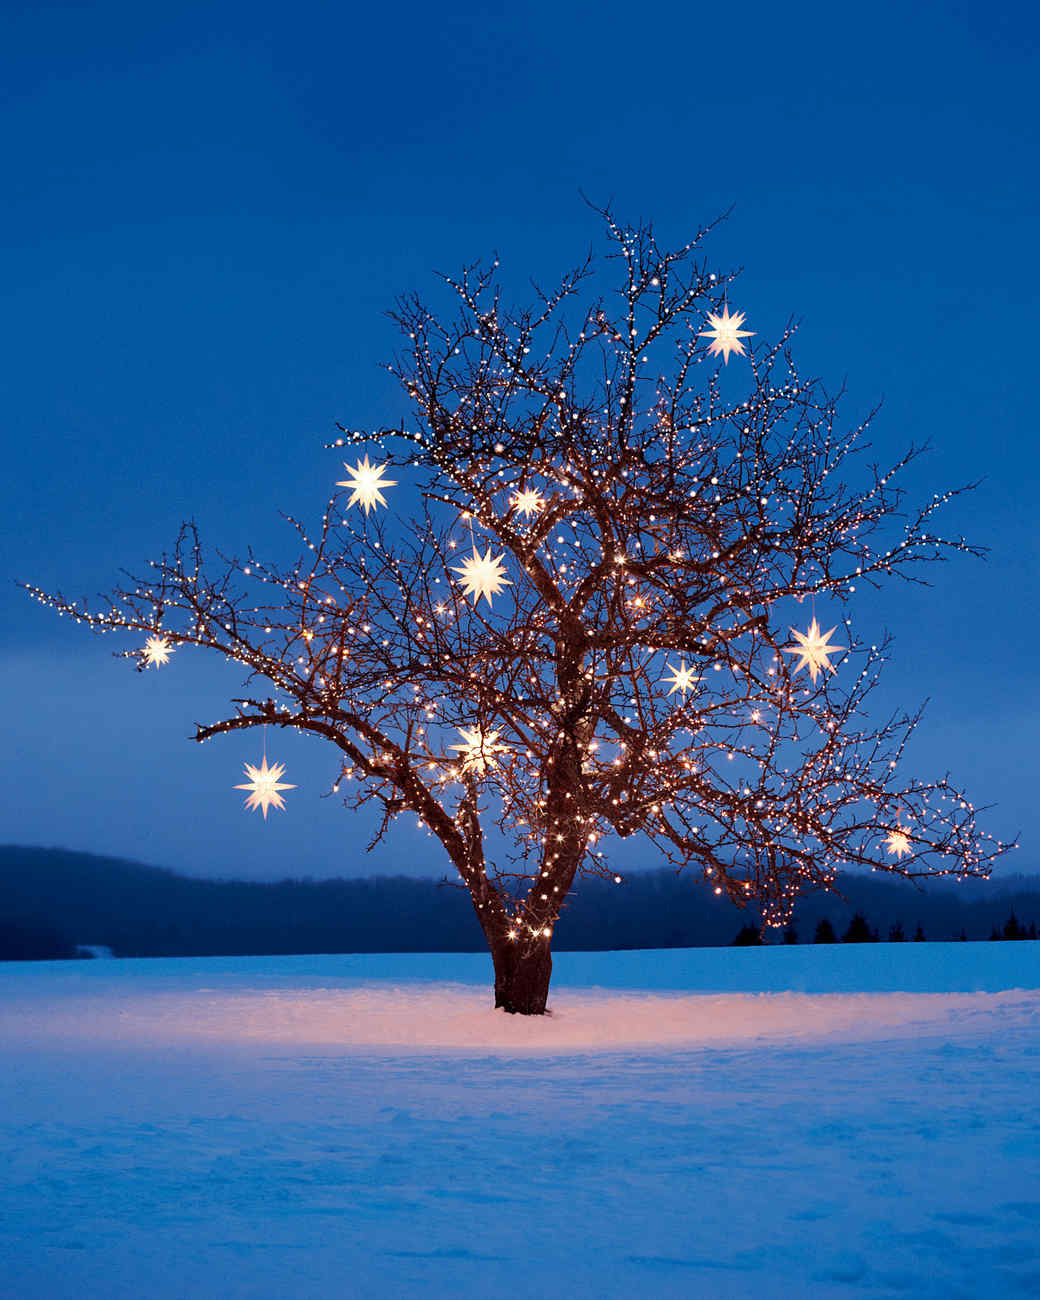 tree-star-lights-md107338.jpg